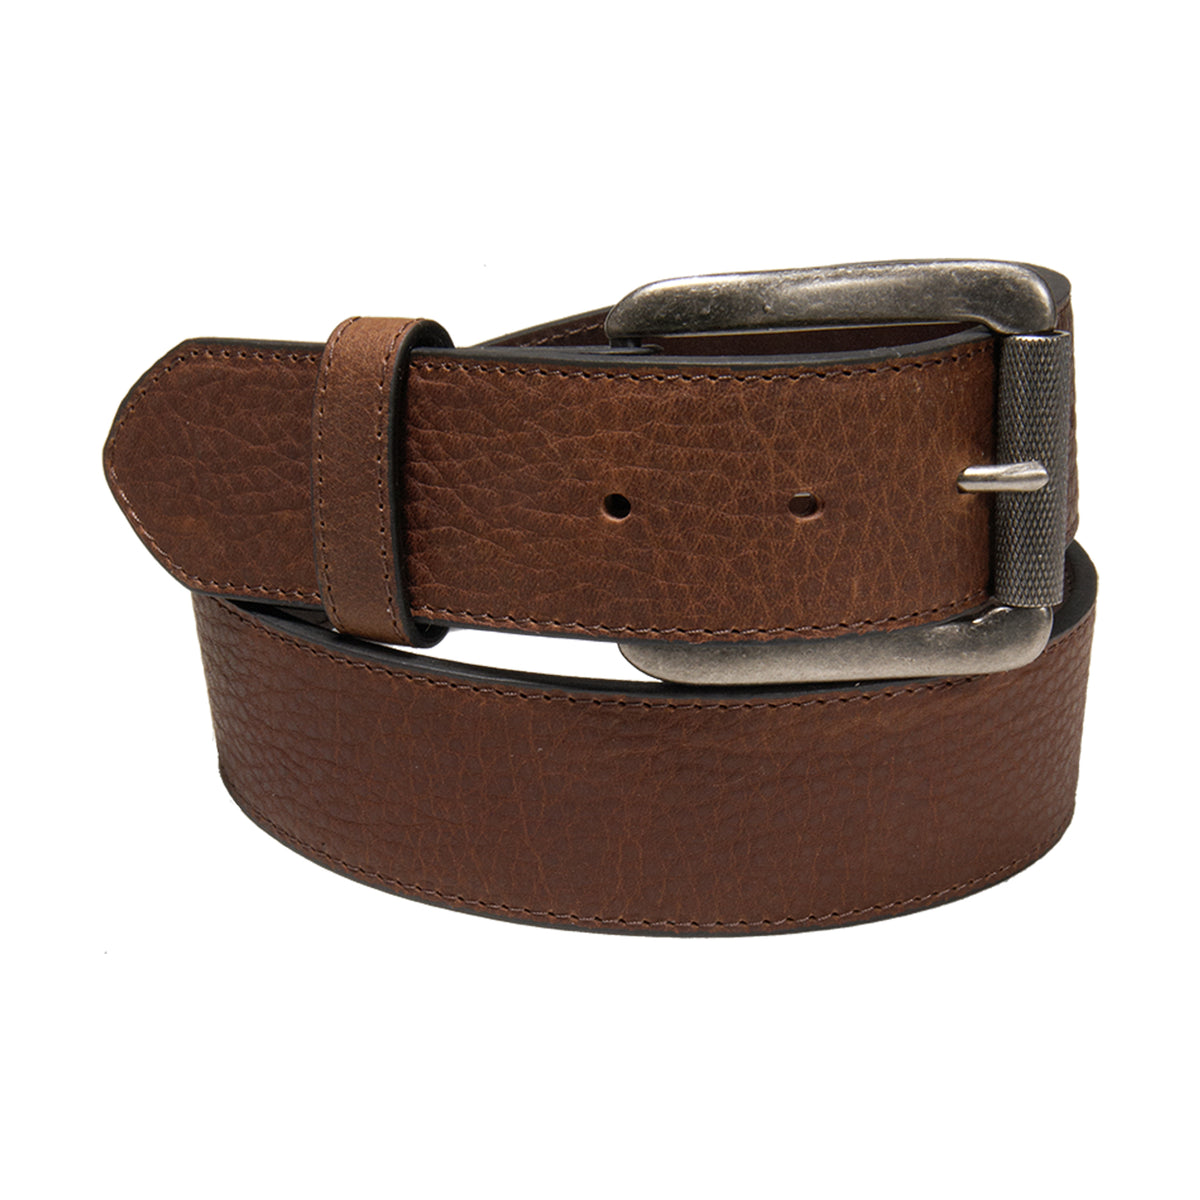 "1 5/8"" Roller Buckle Heavy Duty Belt"